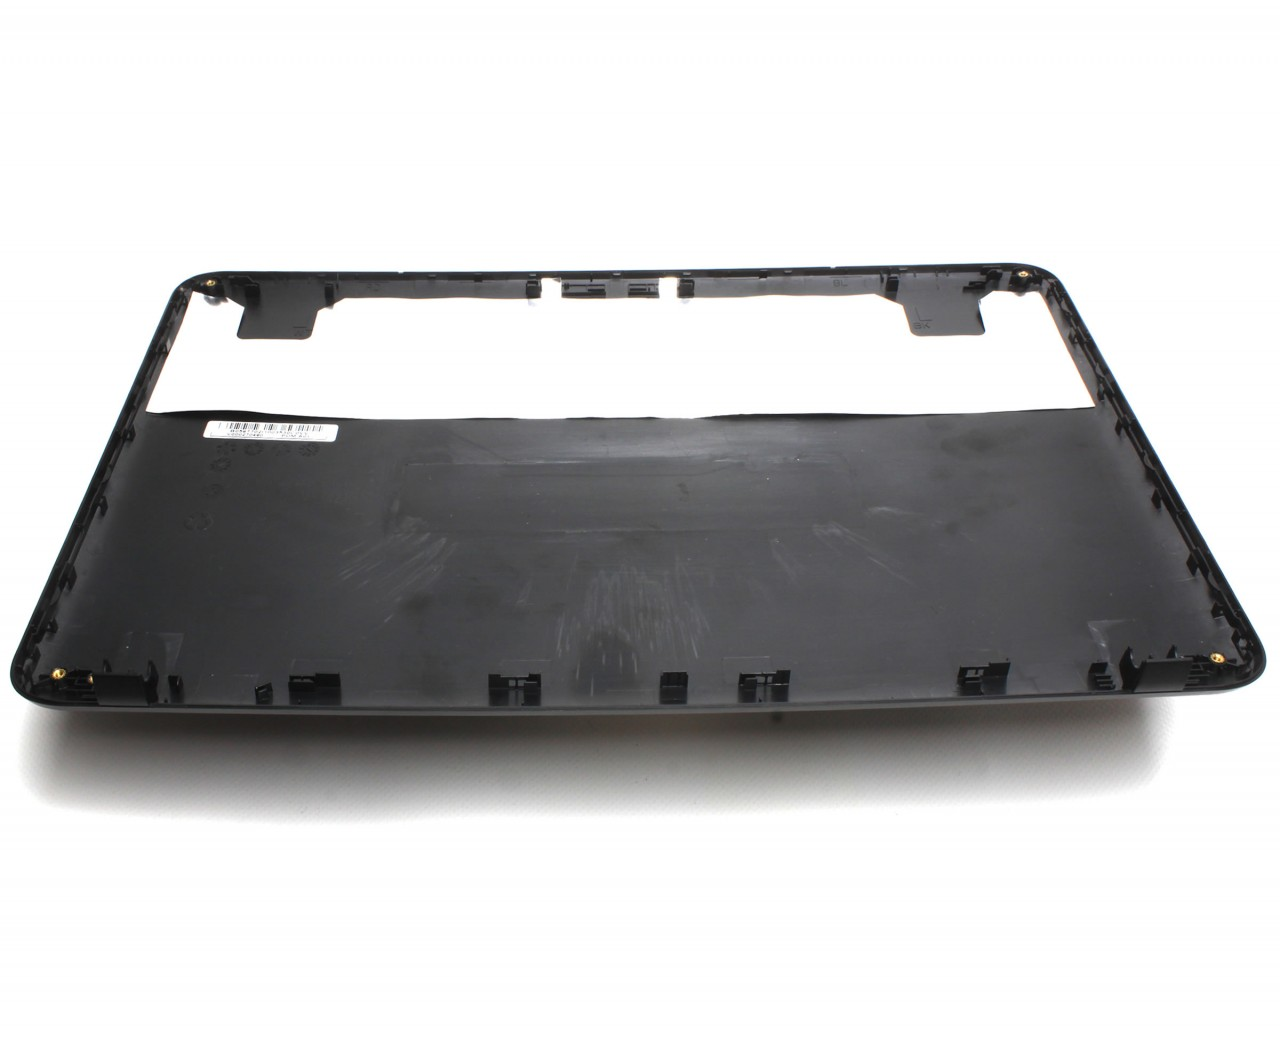 Capac Display BackCover Toshiba V000270490 Carcasa Display Neagra cu 2 Suruburi Balamale imagine powerlaptop.ro 2021